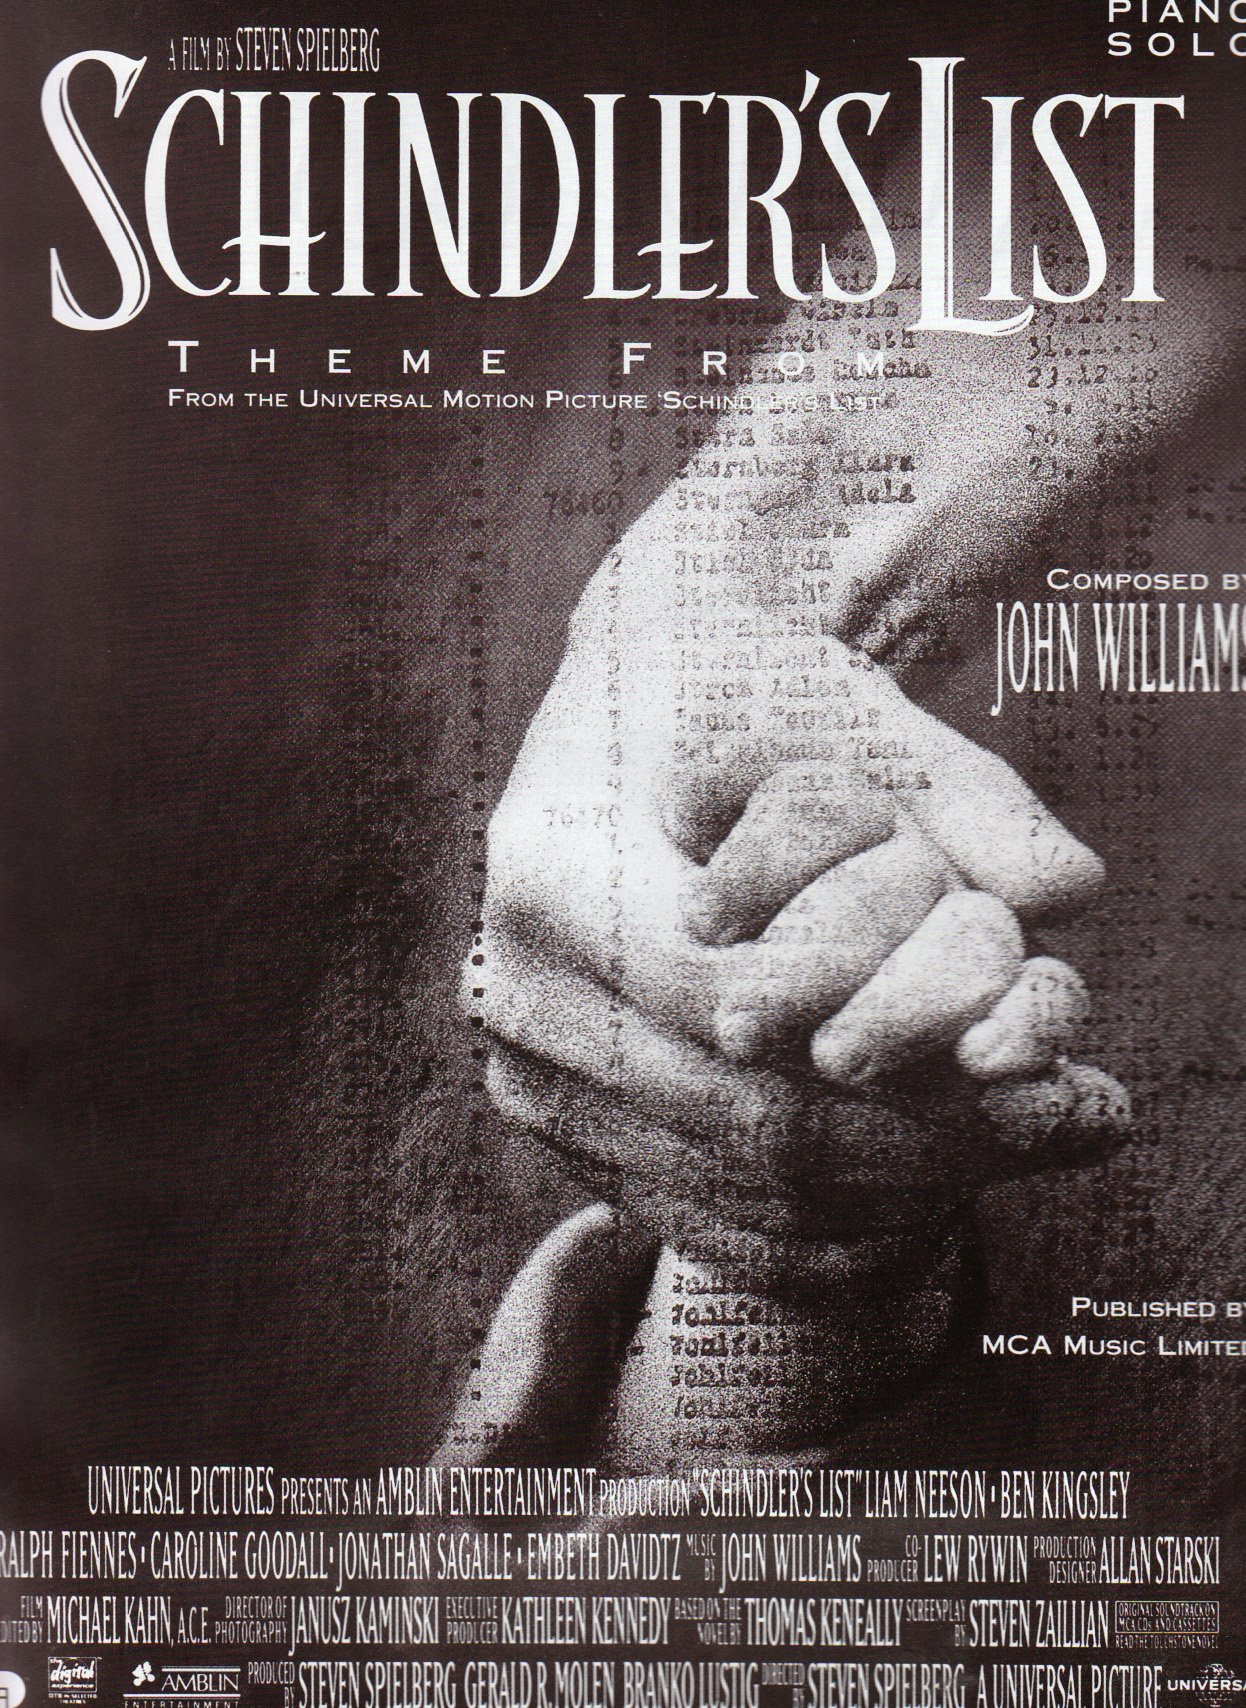 Schindlers List 2020.Schindlers List Theme Piano Solo Amazon Co Uk John